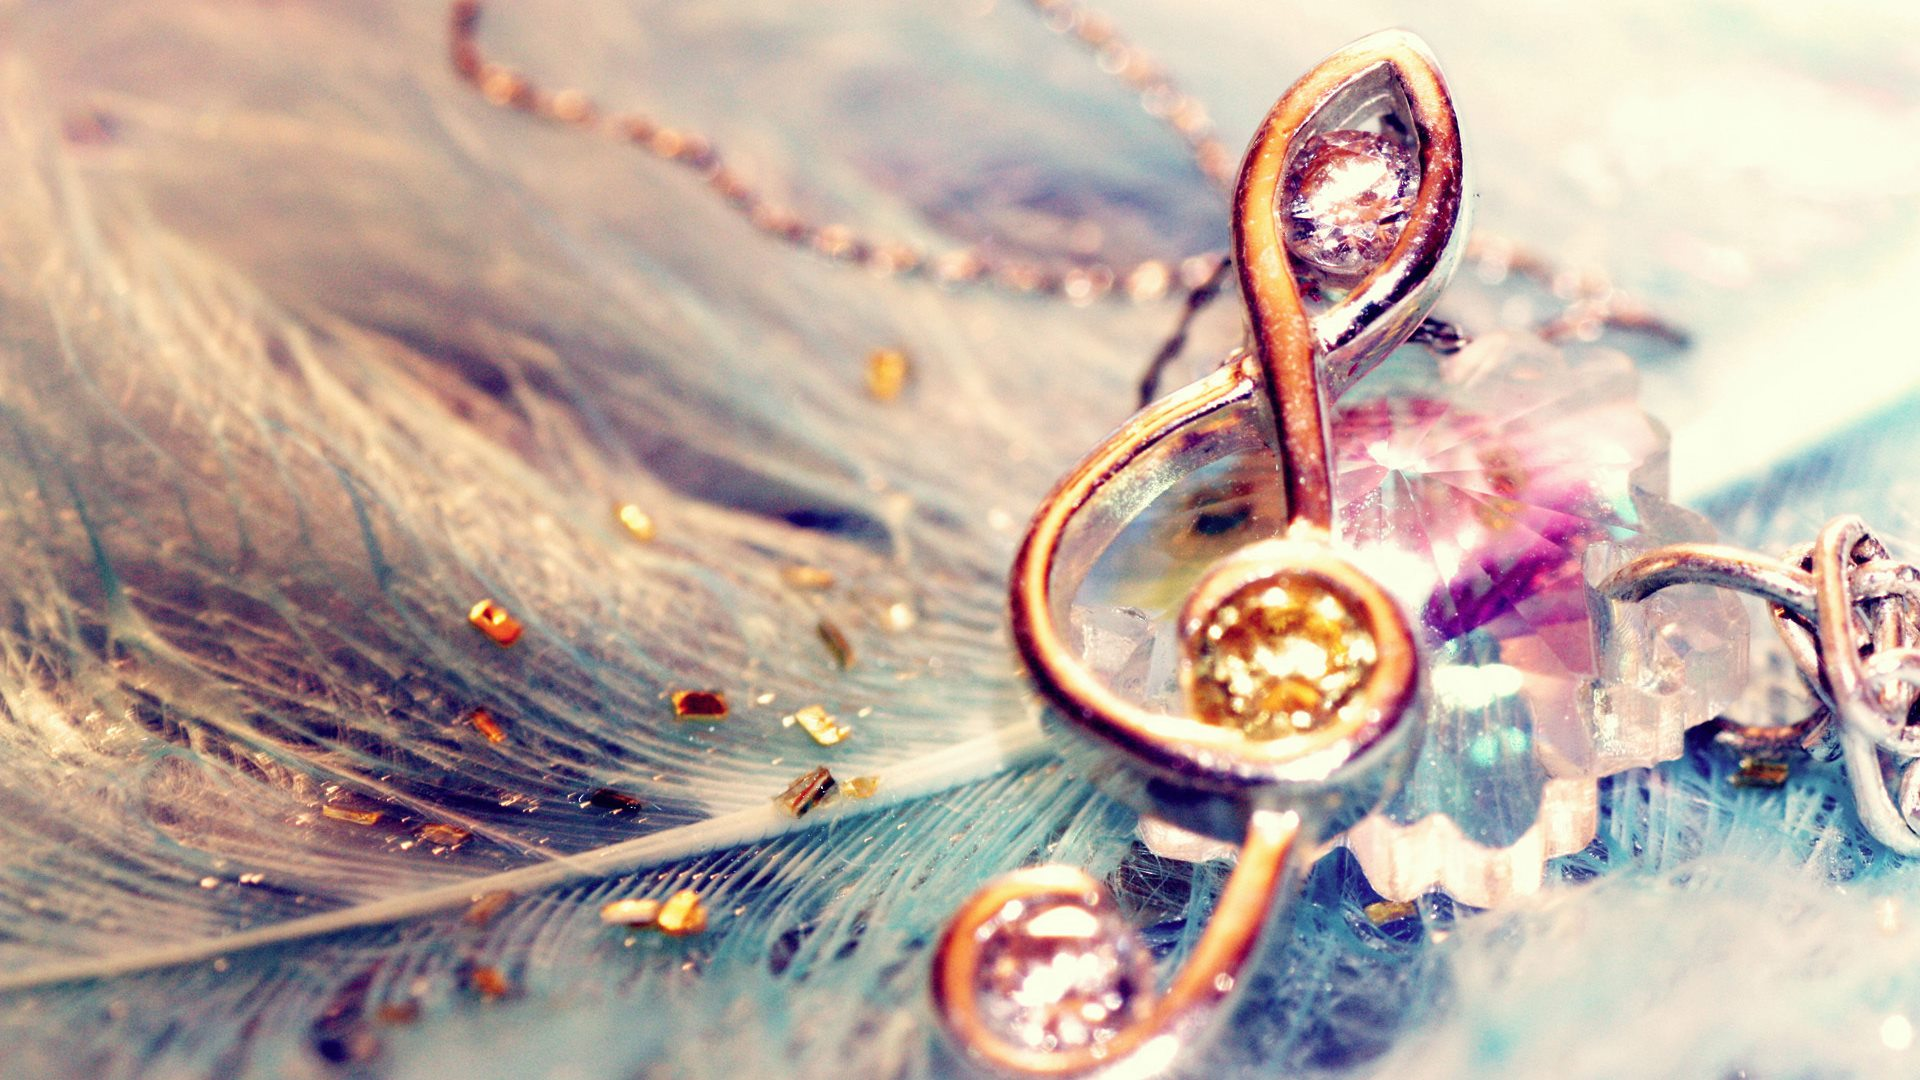 Cute Music Note Wallpaper: Colorful Music Notes Wallpaper